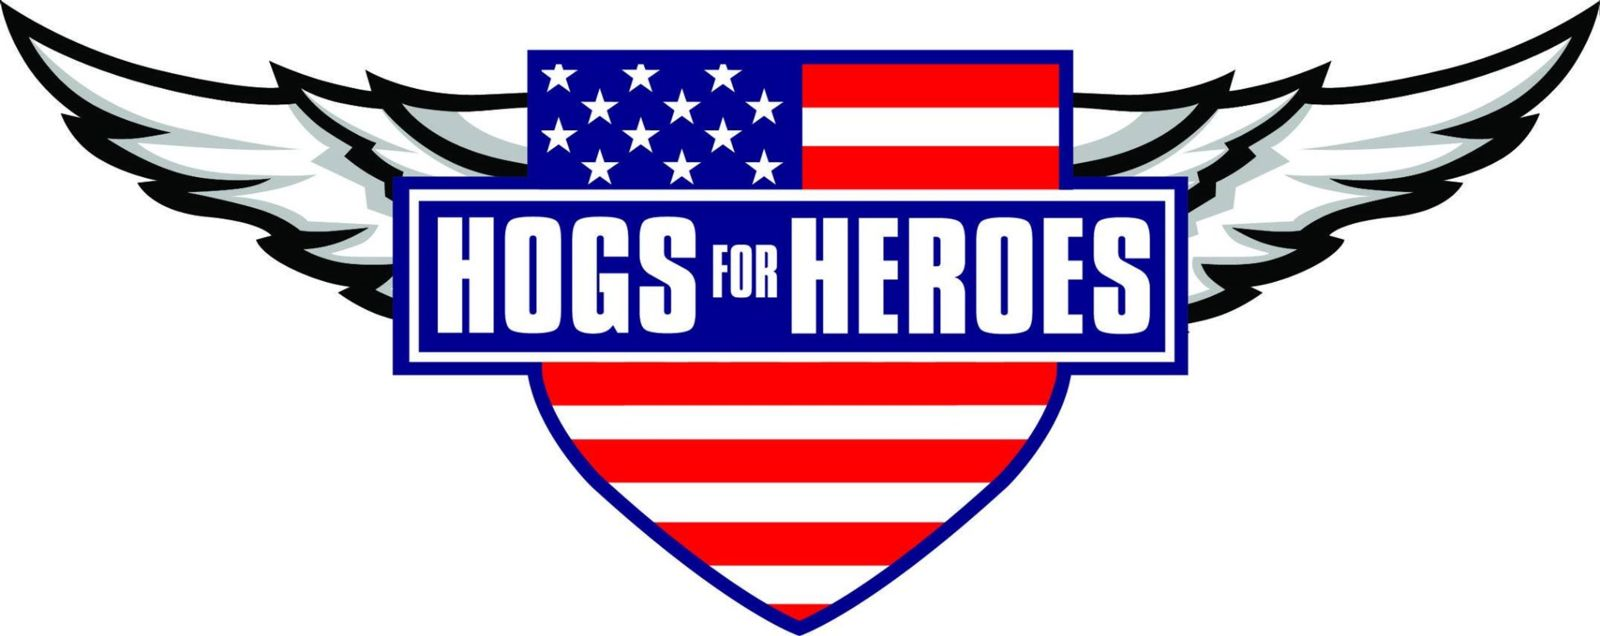 Hogs for heroes giving back to wisconsin veterans